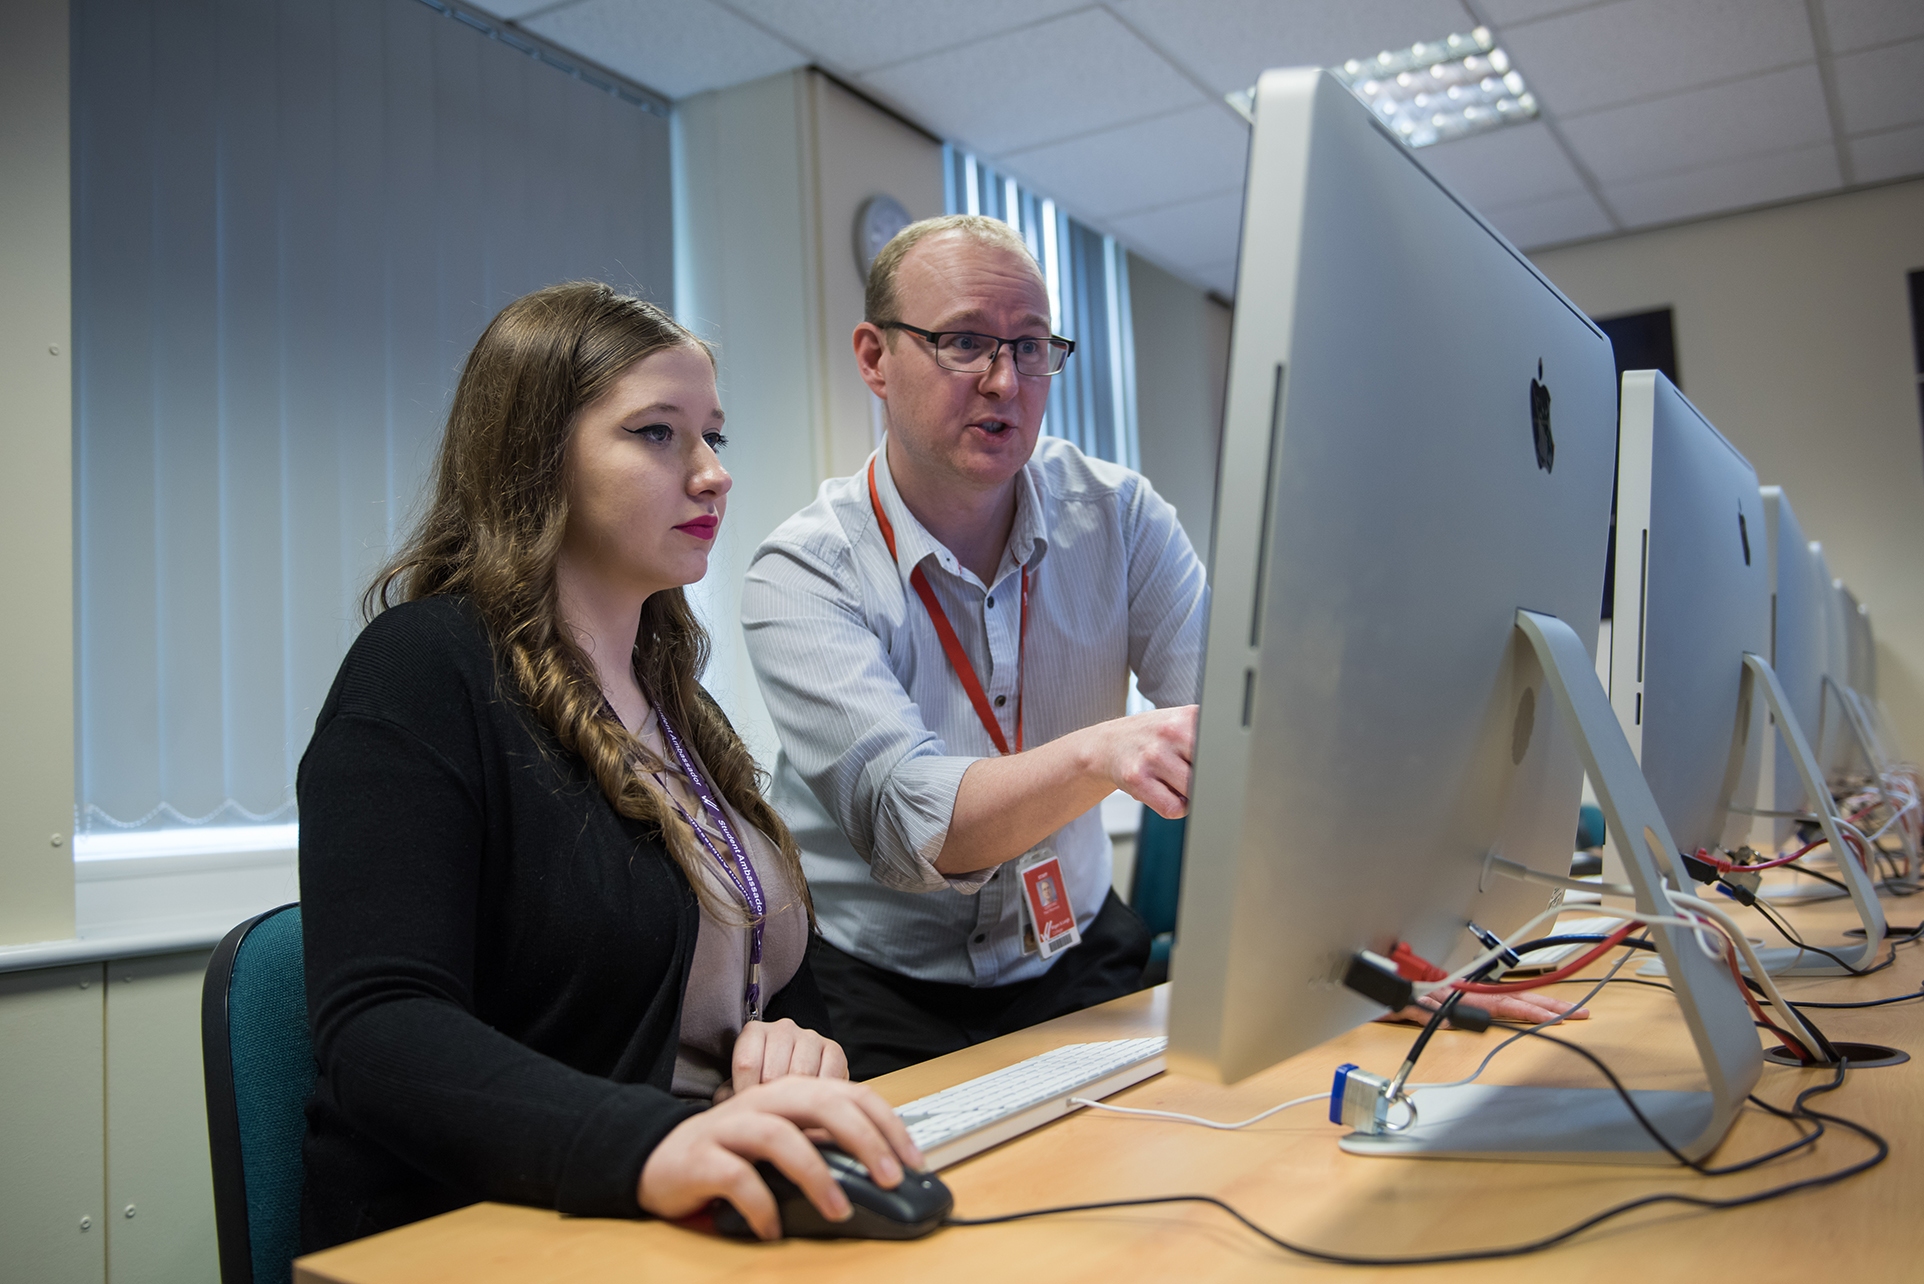 Wigan & Leigh College :: Computer Science and Digital Skills